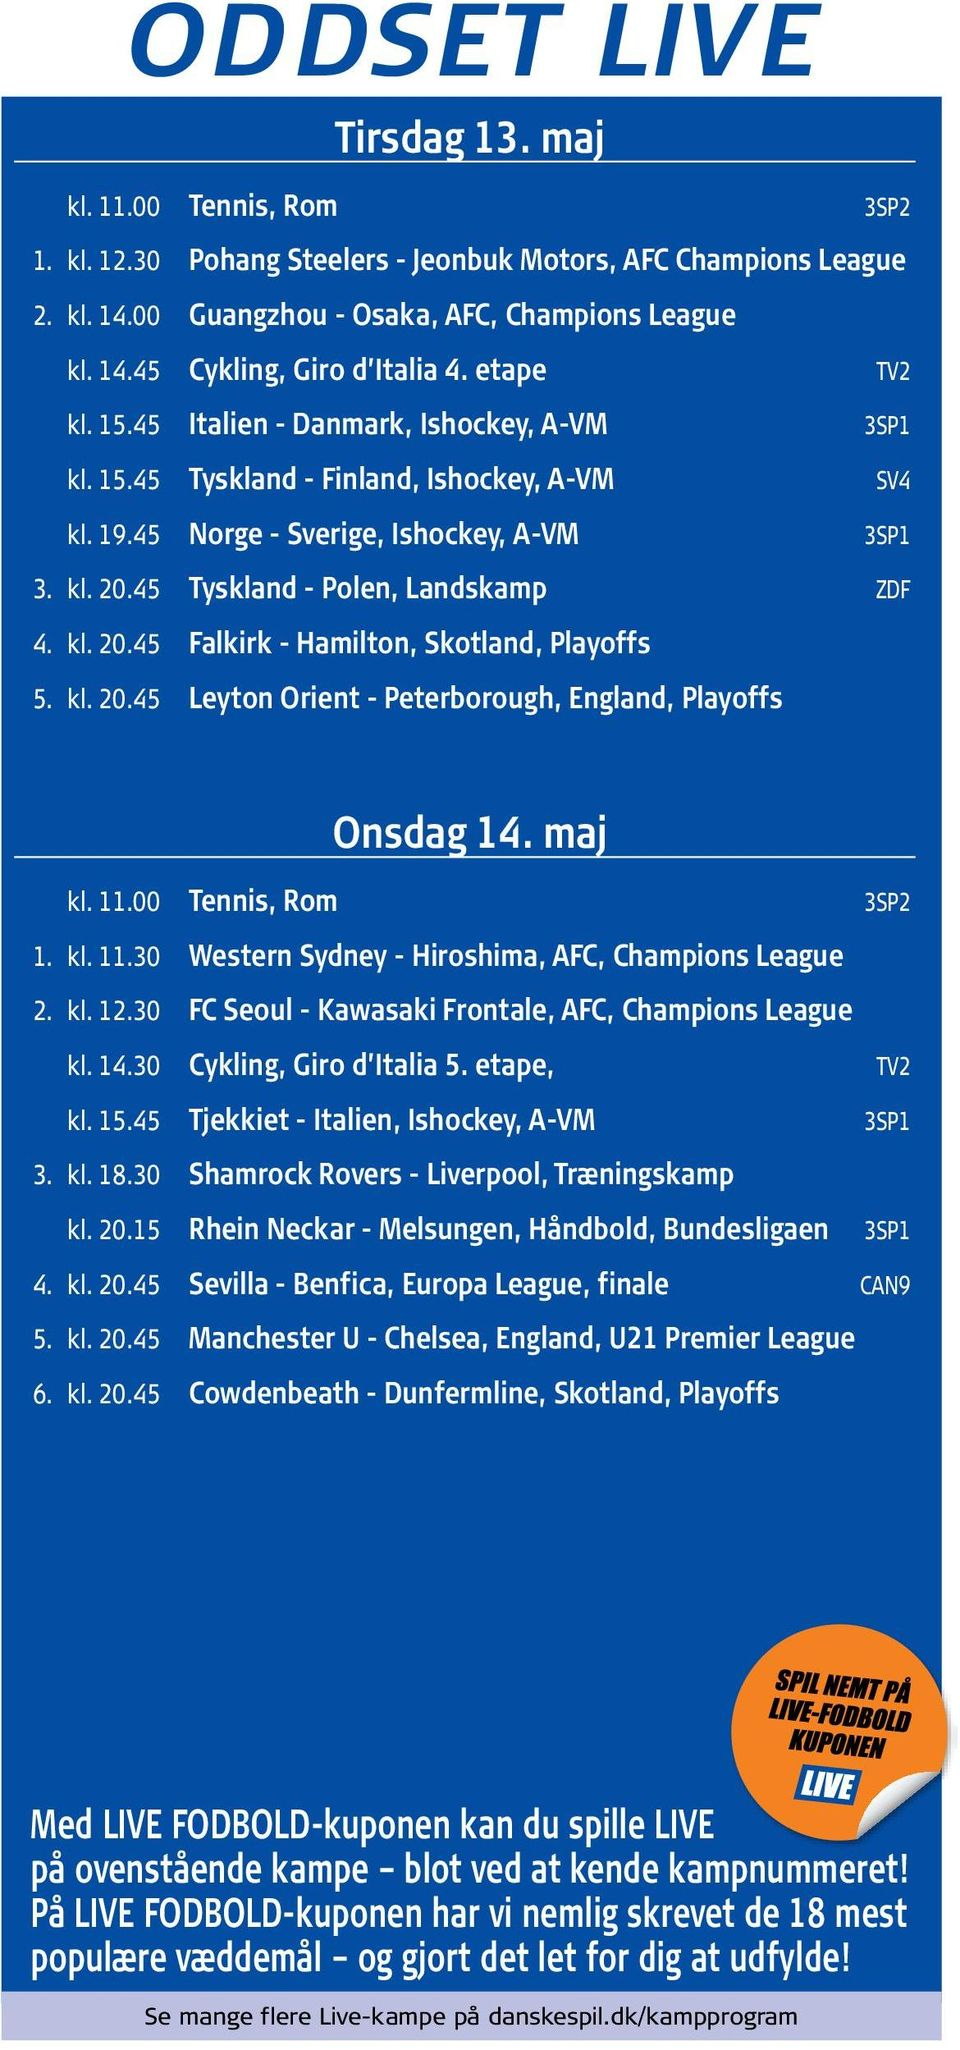 kl. 20.45 Leyton Orient Peterborough, England, Playoffs Onsdag 14. maj kl. 11.00 Tennis, Rom 3SP2 1. kl. 11.30 Western Sydney Hiroshima, AFC, Champions League 2. kl. 12.